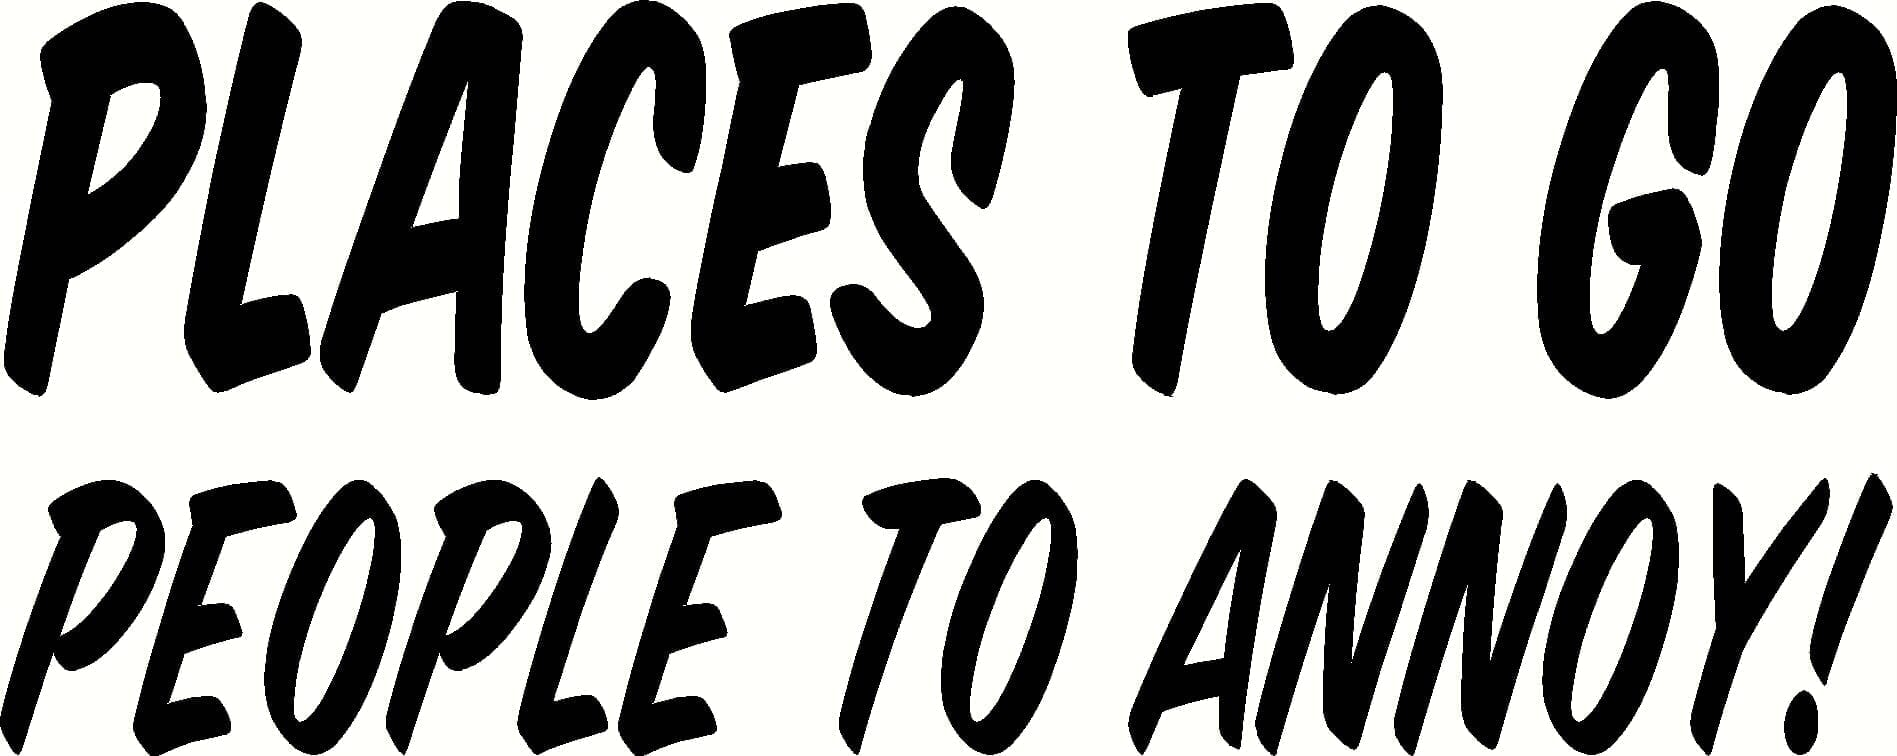 Places to Go, People to Annoy. Originally from Garfield, they are now popping up on cars, motor bike helmets, clothing, coffee mugs.